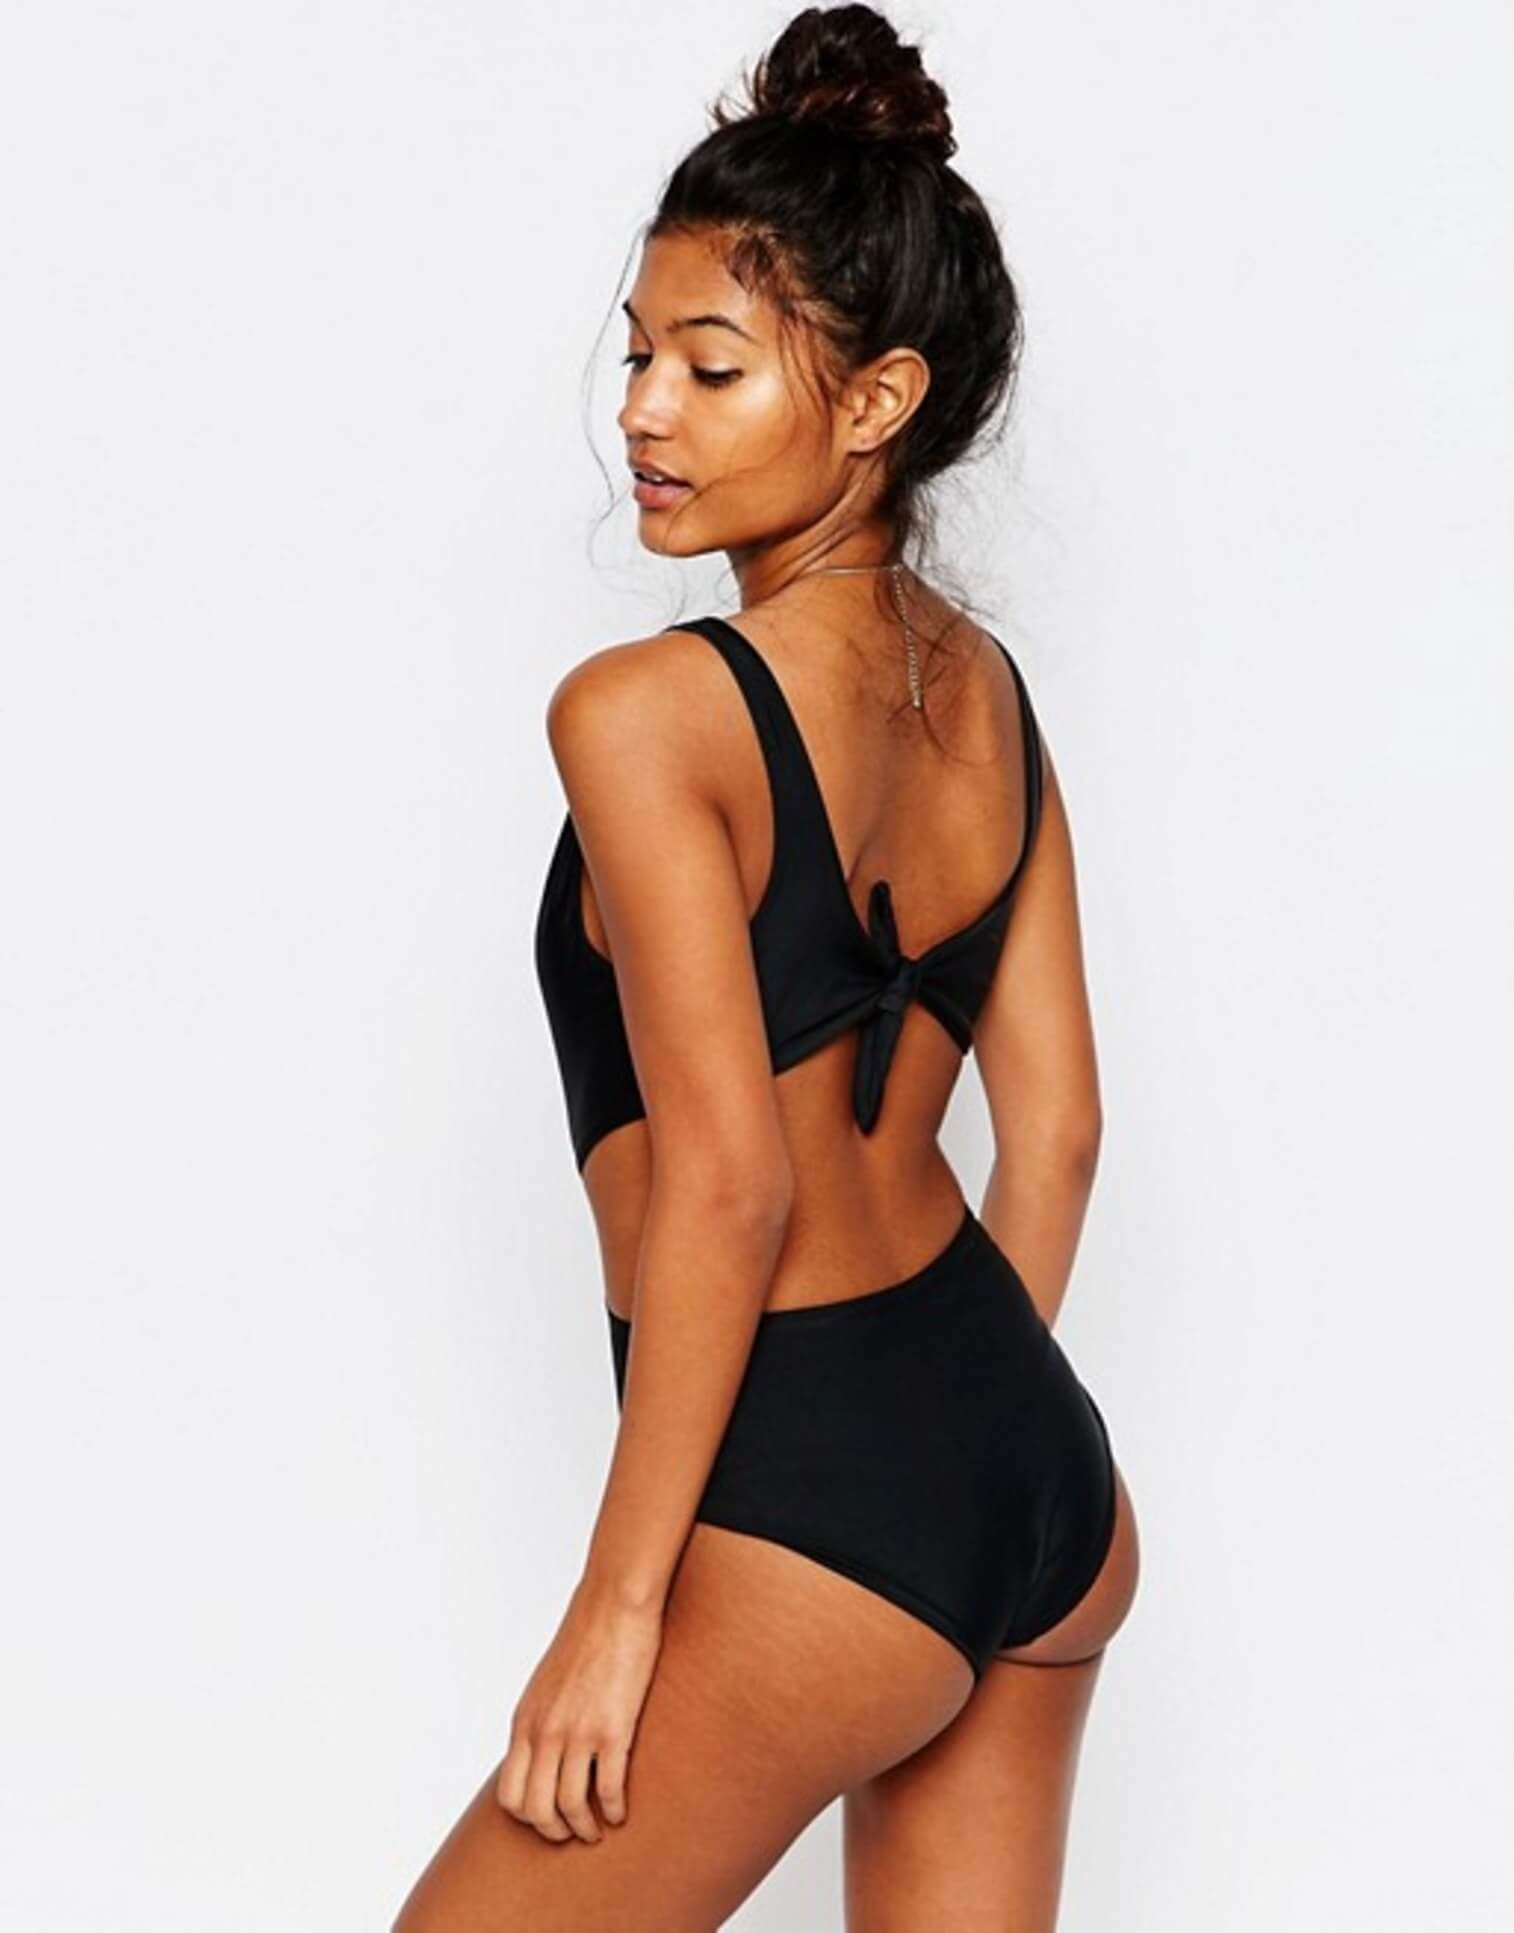 1ca7527817 ... stretch marks off some models featured on their website. The images  recently added to their website see a couple of the models proudly showing  off their ...